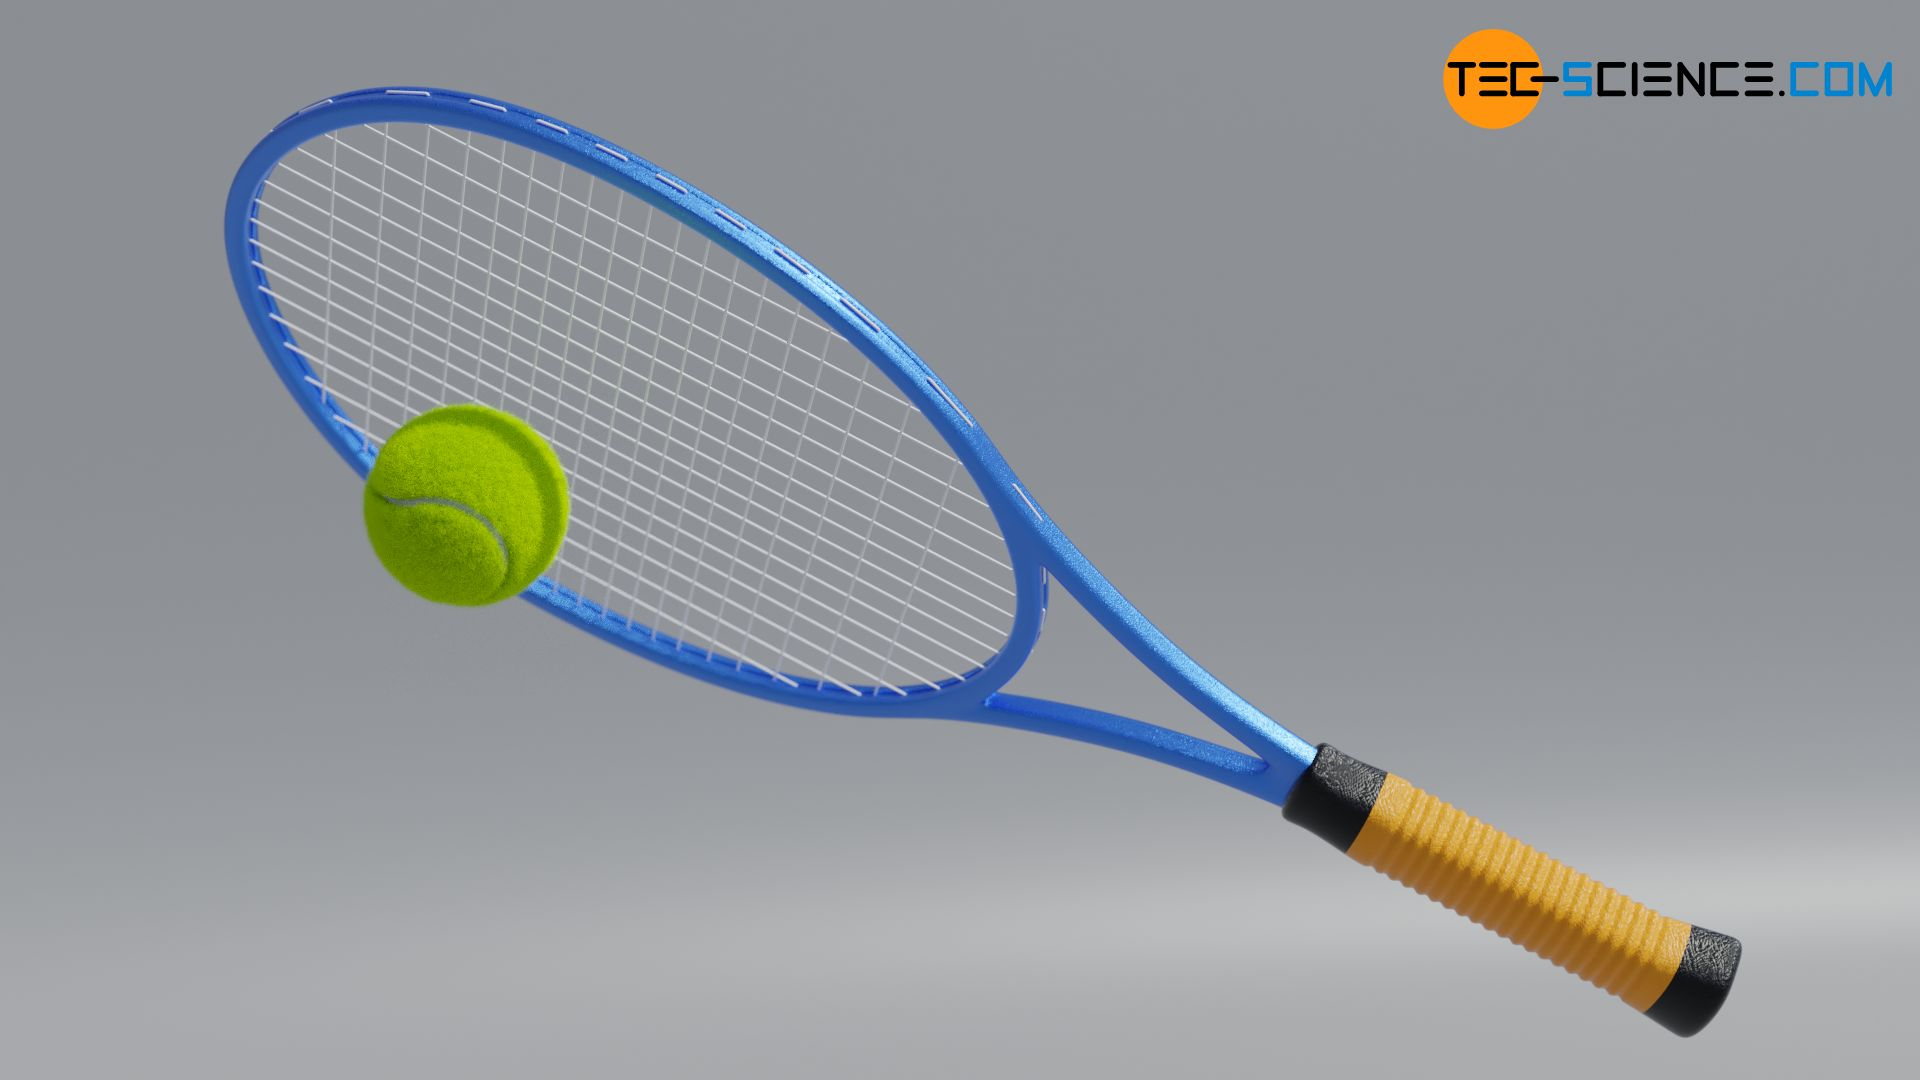 Increasing the kinetic energy of a tennis ball by hitting it with a racket